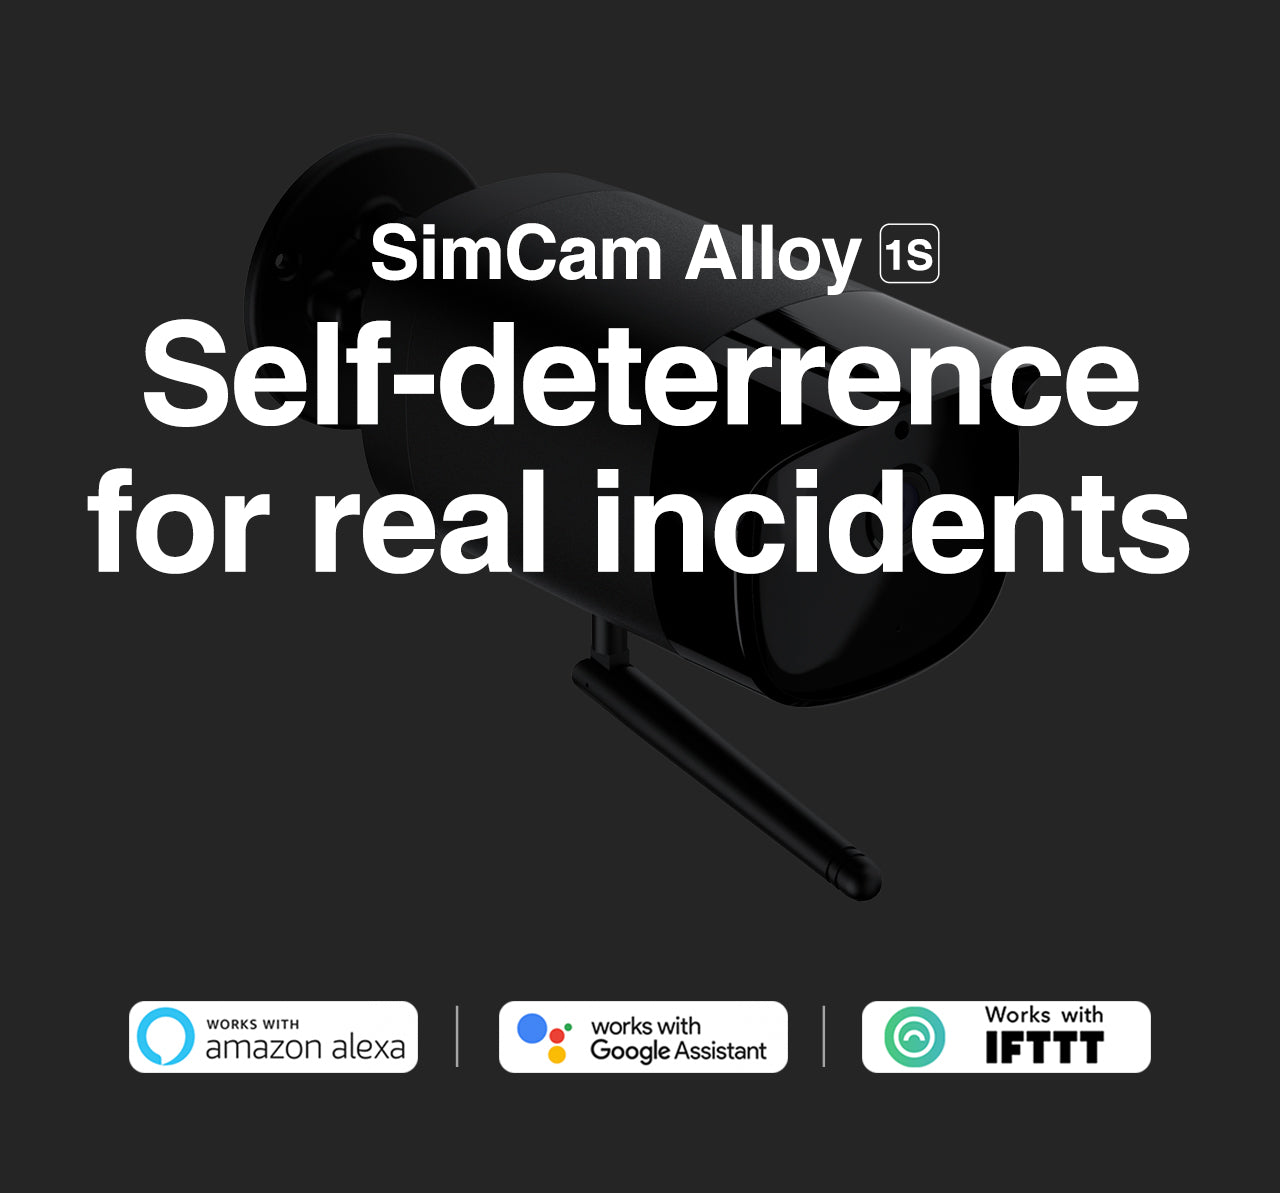 simcam alloy 1s outdoor security camera self-deterrence